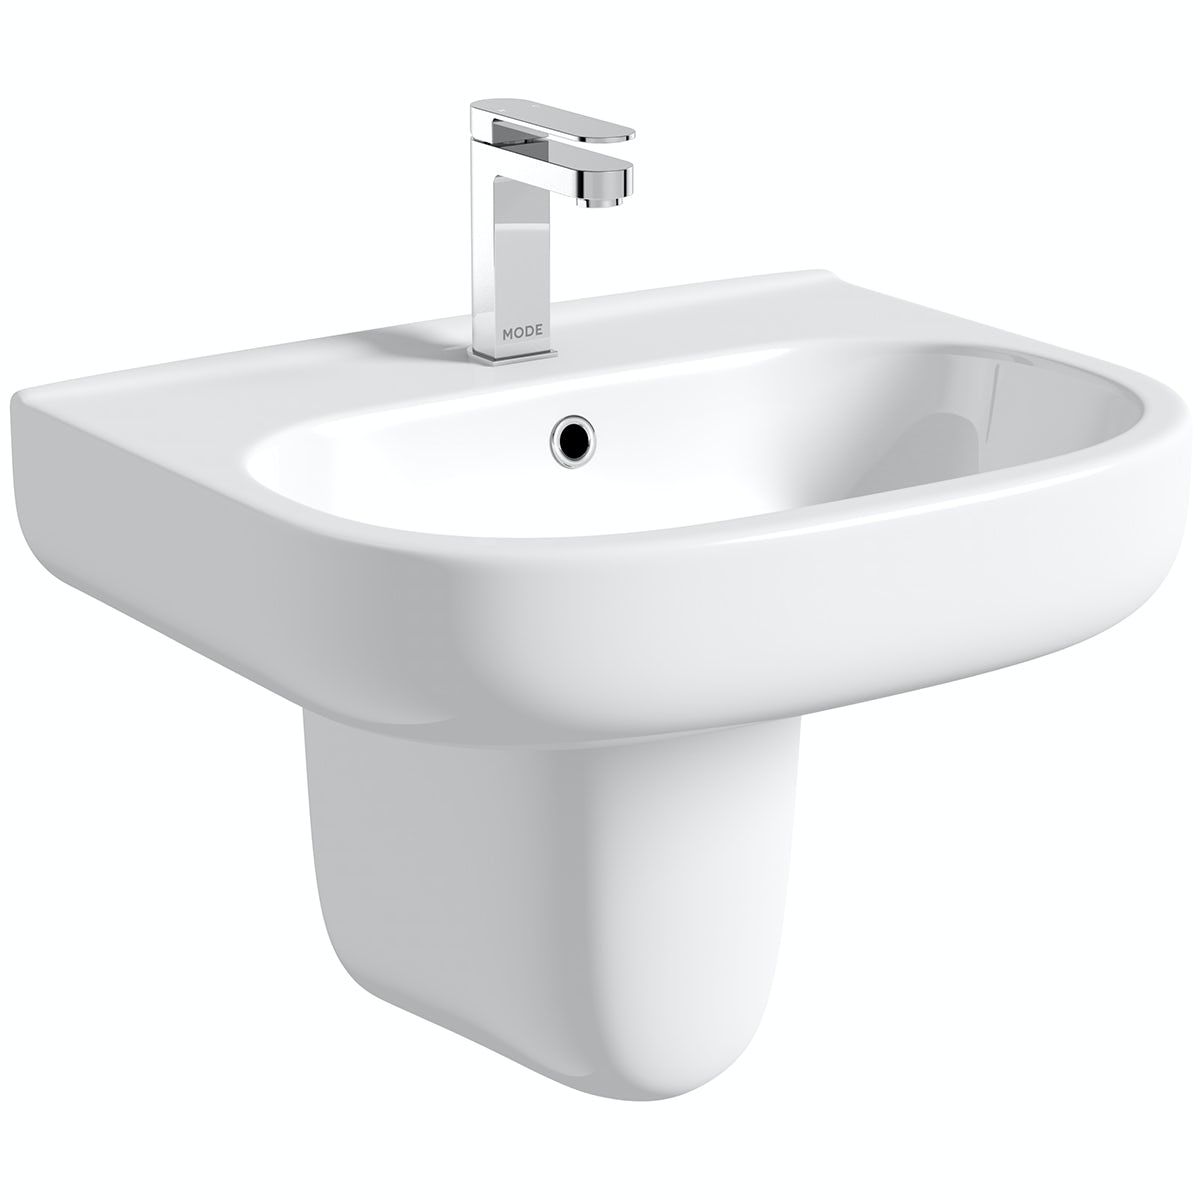 Mode Burton semi pedestal basin 550mm with waste